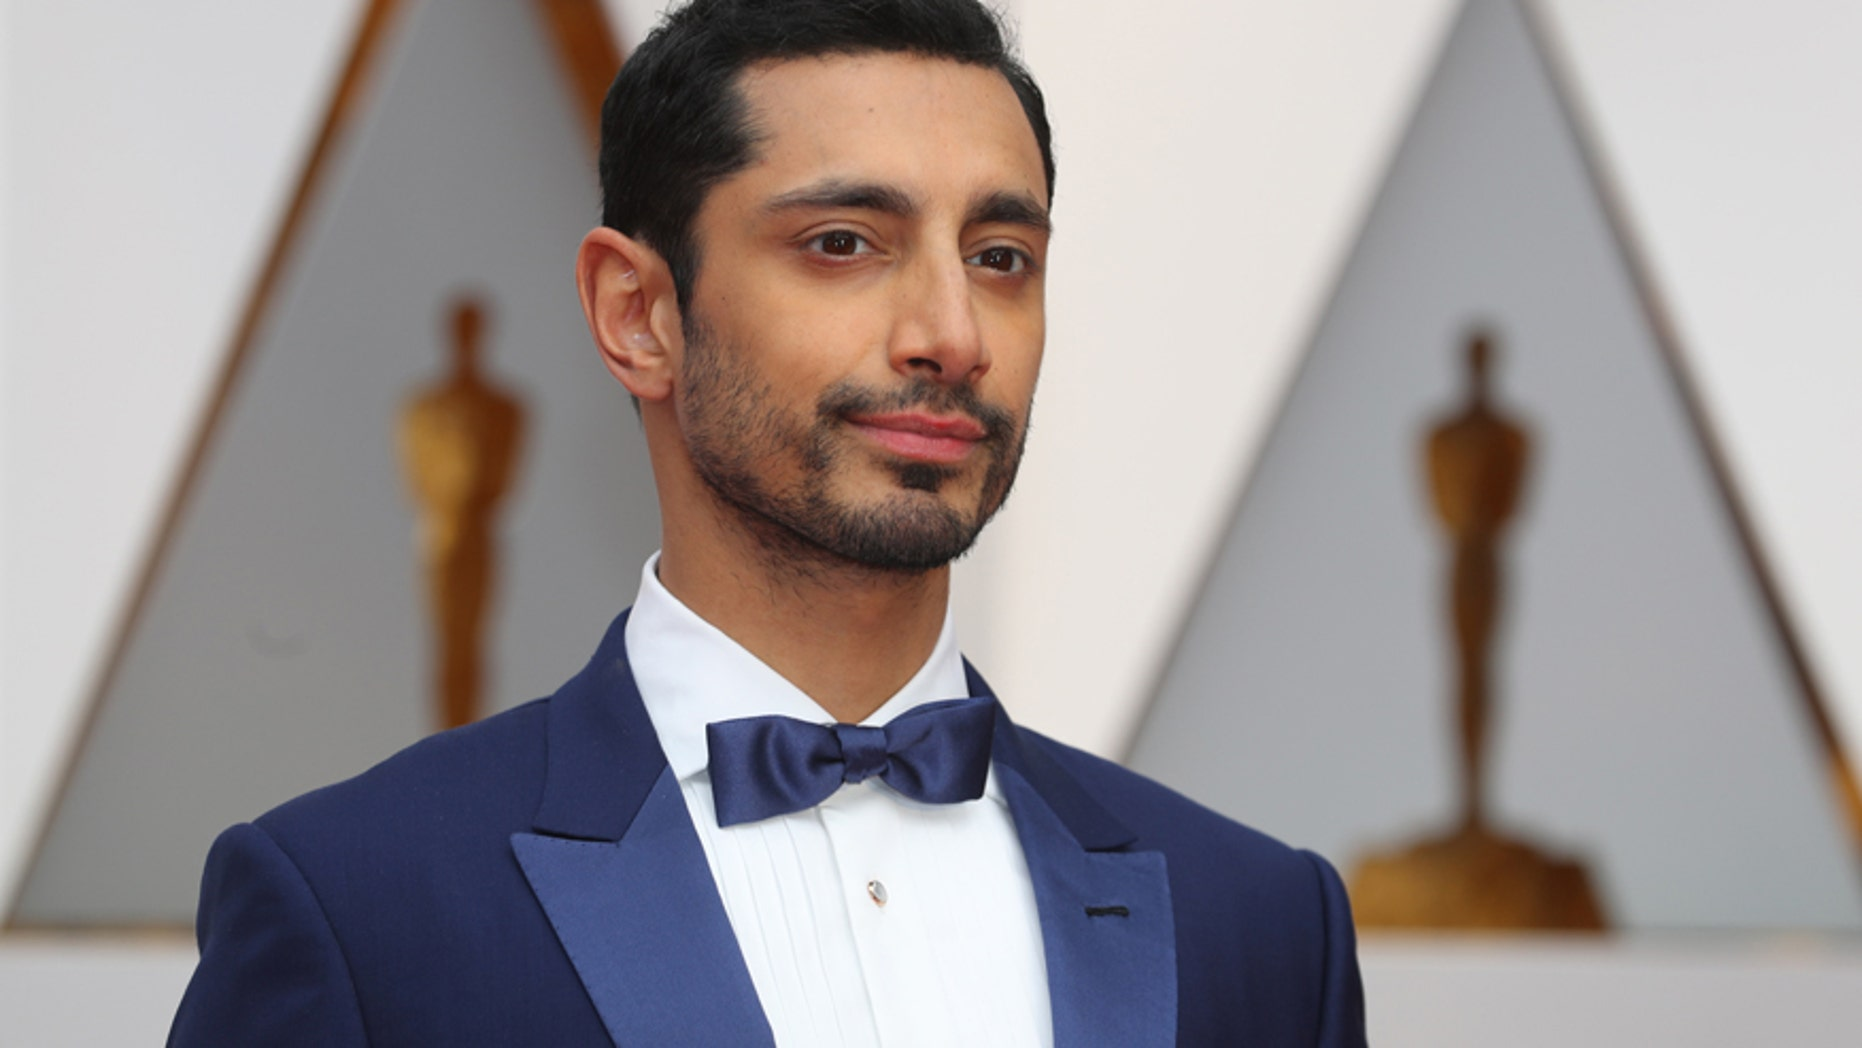 Actor Riz Ahmed arrives at the 89th Academy Awards in Hollywood, California on Feb. 26, 2017.